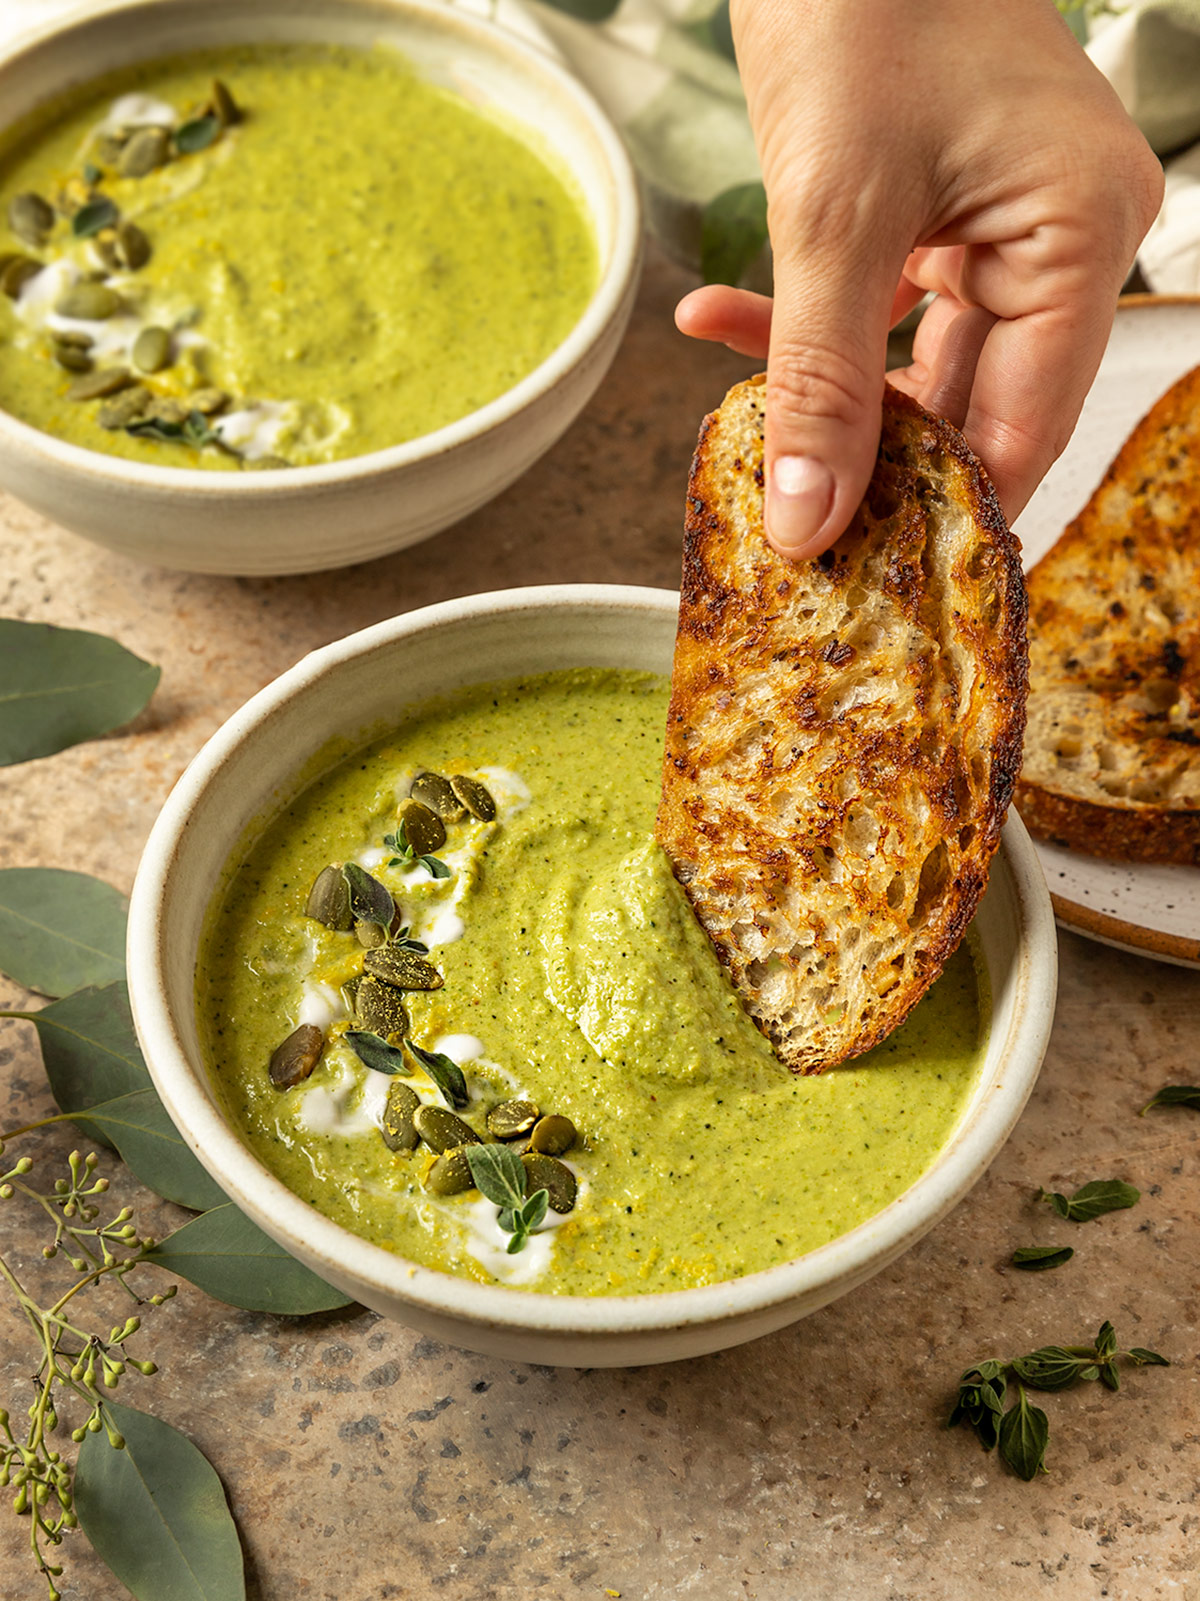 hand dipping toasted bread into a bowl of broccoli soup